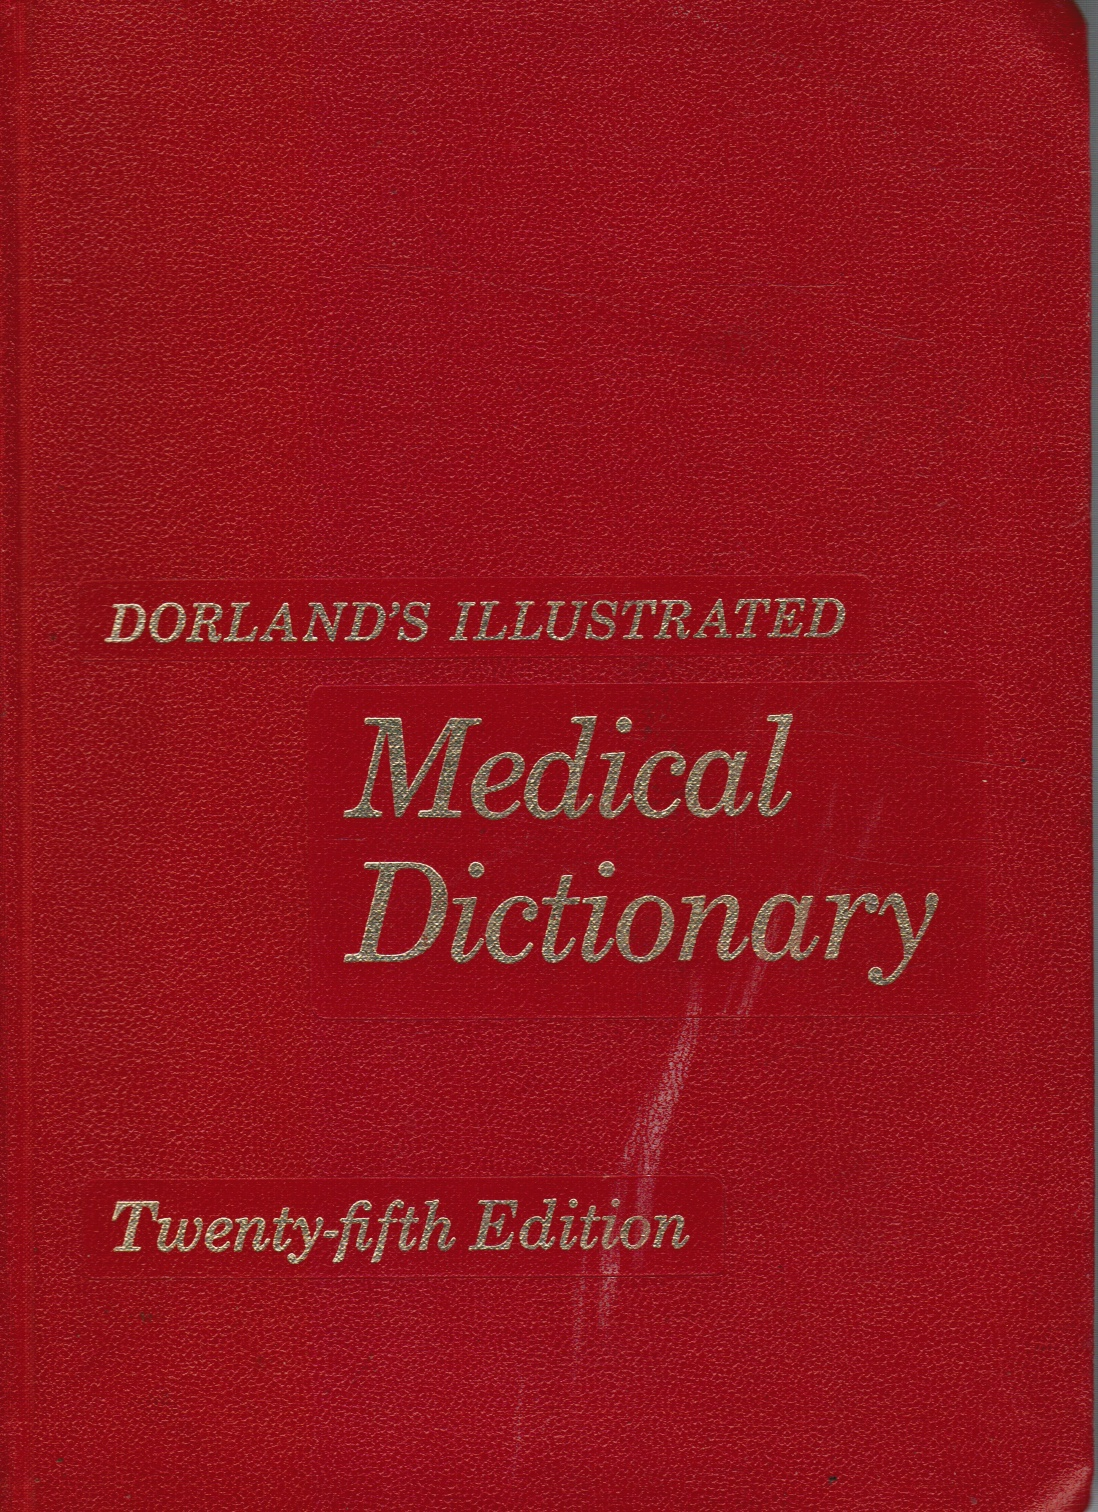 Image for Dorland's Illustrated Medical Dictionary